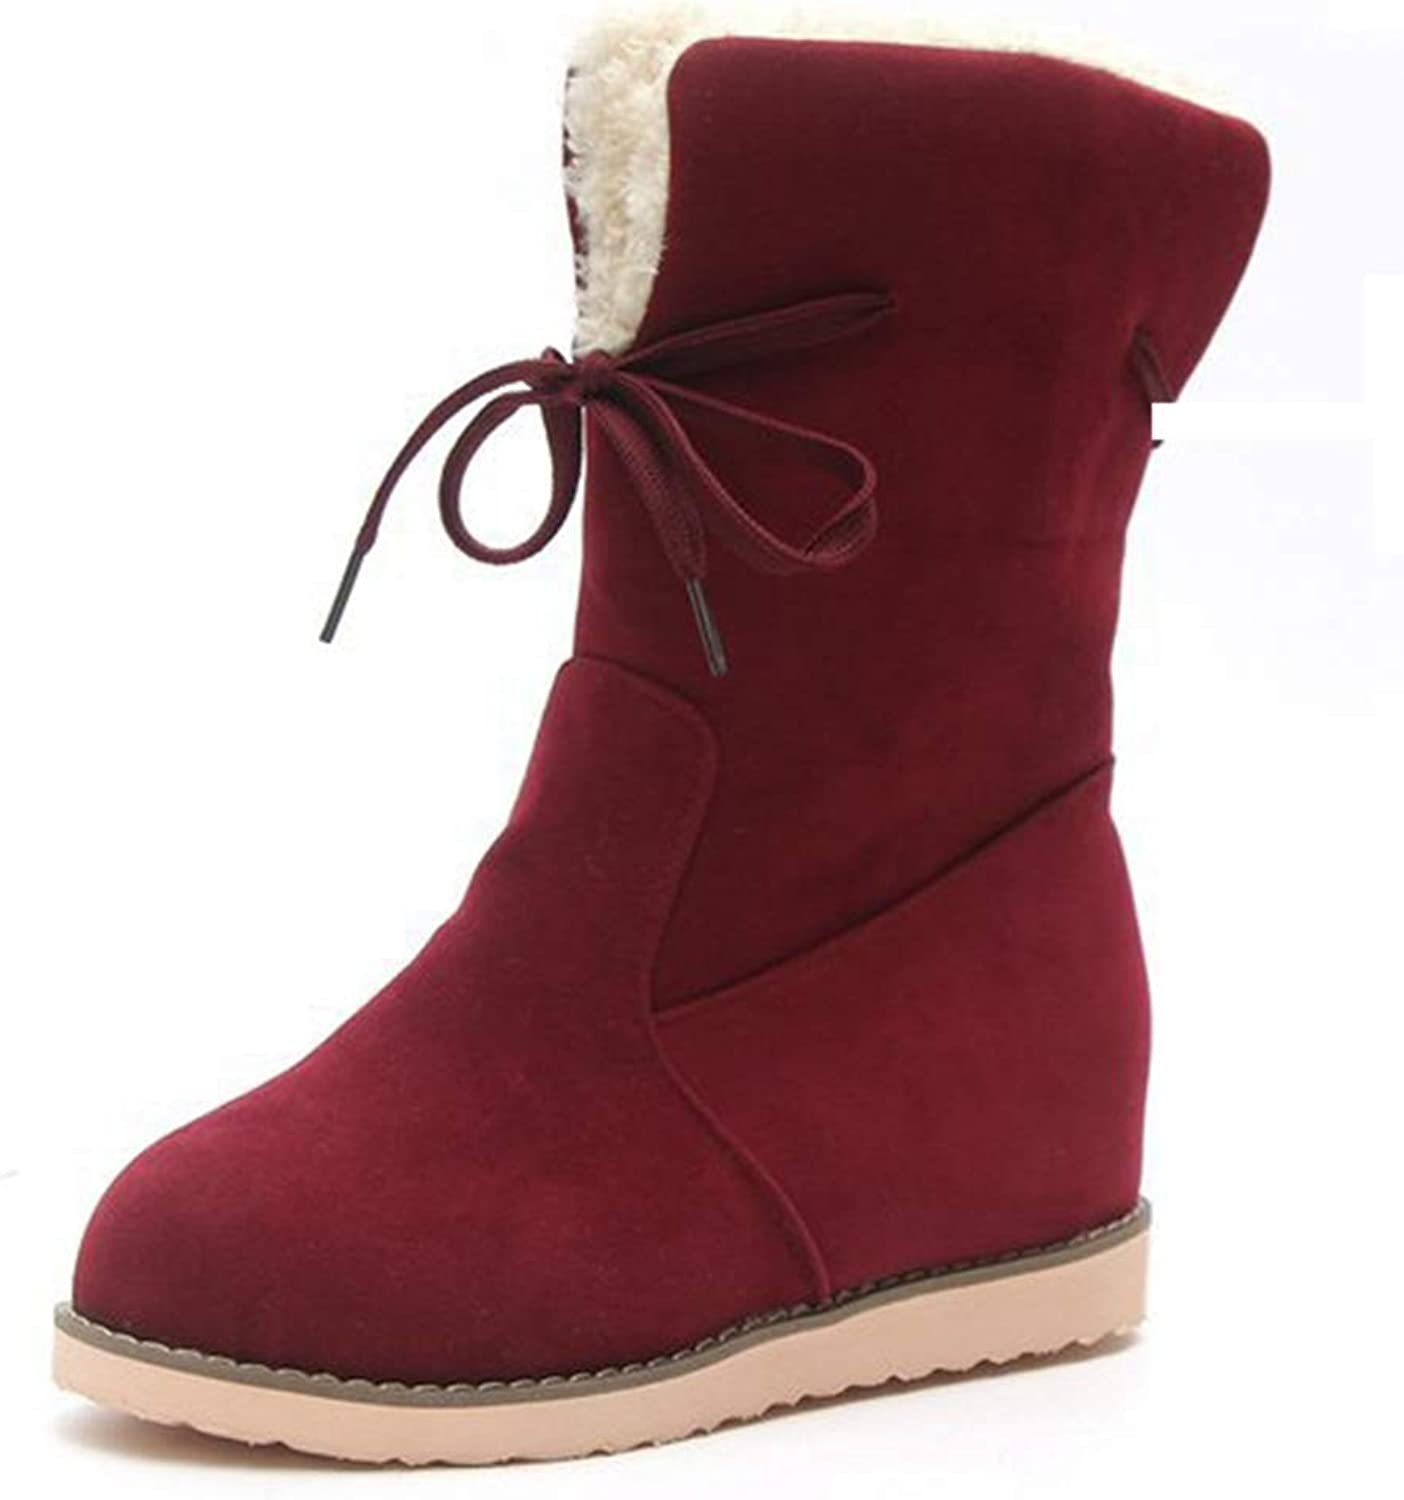 Hoxekle Fashion Warm Women Cotton shoes Fall Winter Snow Boots Comfortable Suede Lady Boot Solid color Female shoes